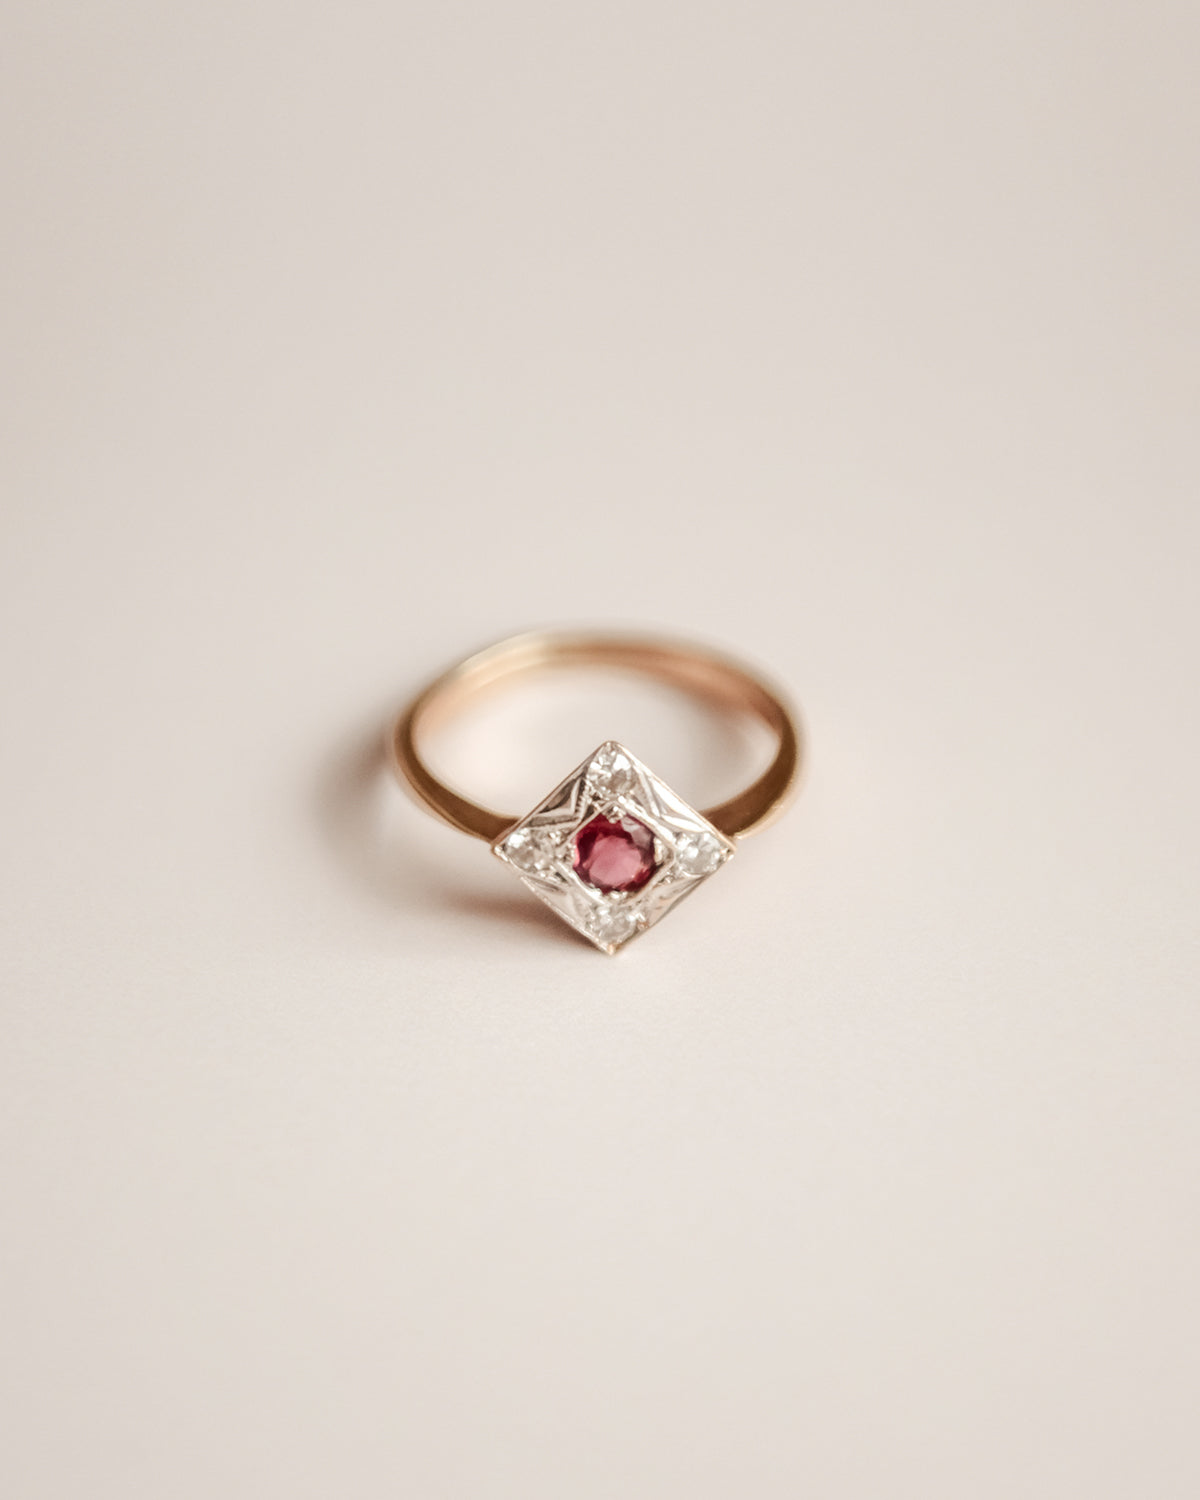 Image of Temperance Exclusive Vintage 9ct Gold Ruby and Diamond Ring